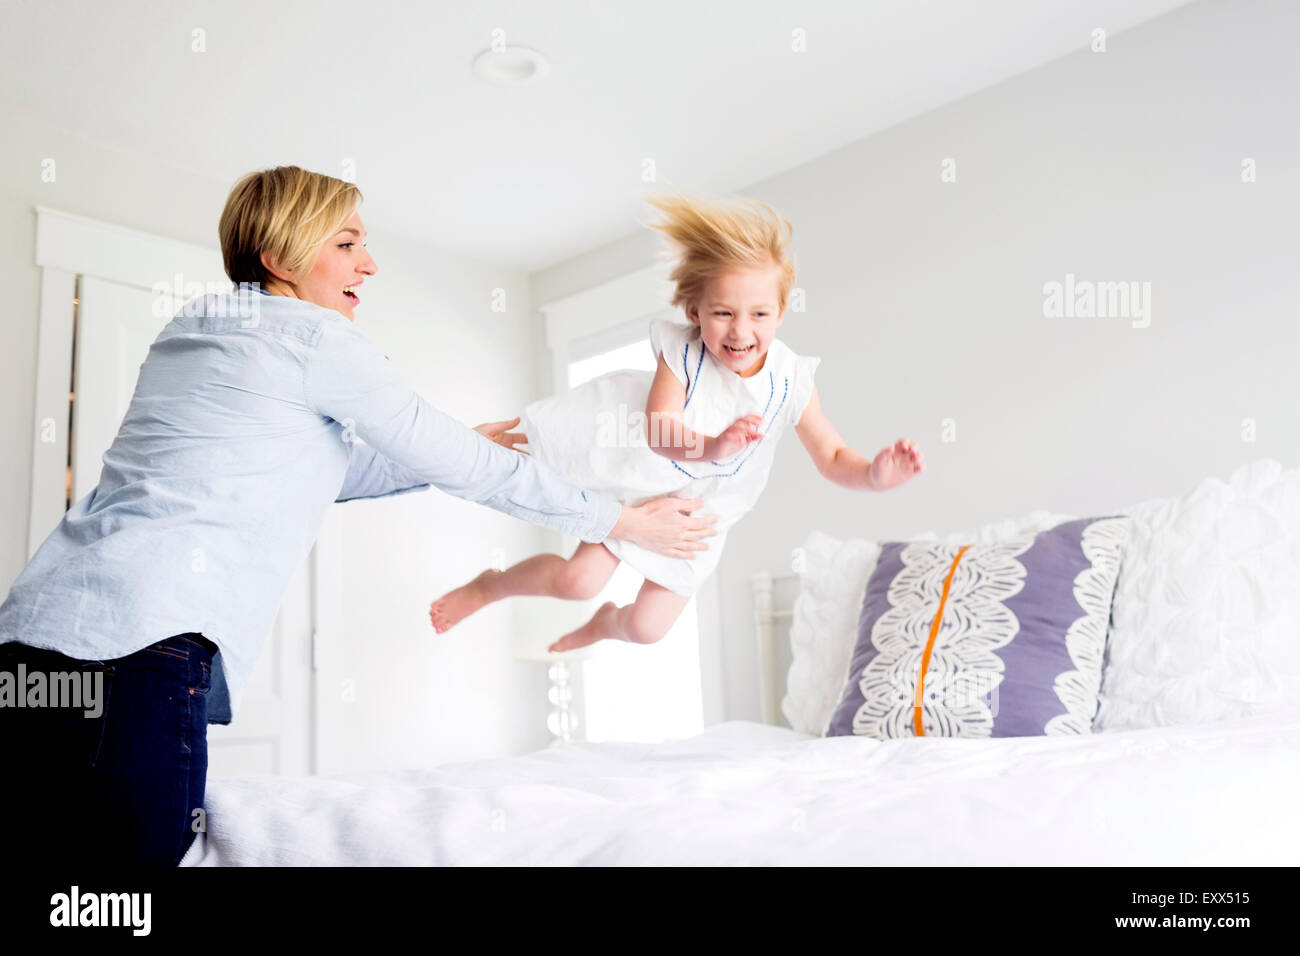 Woman Playing with girl (2-3) dans la chambre Photo Stock